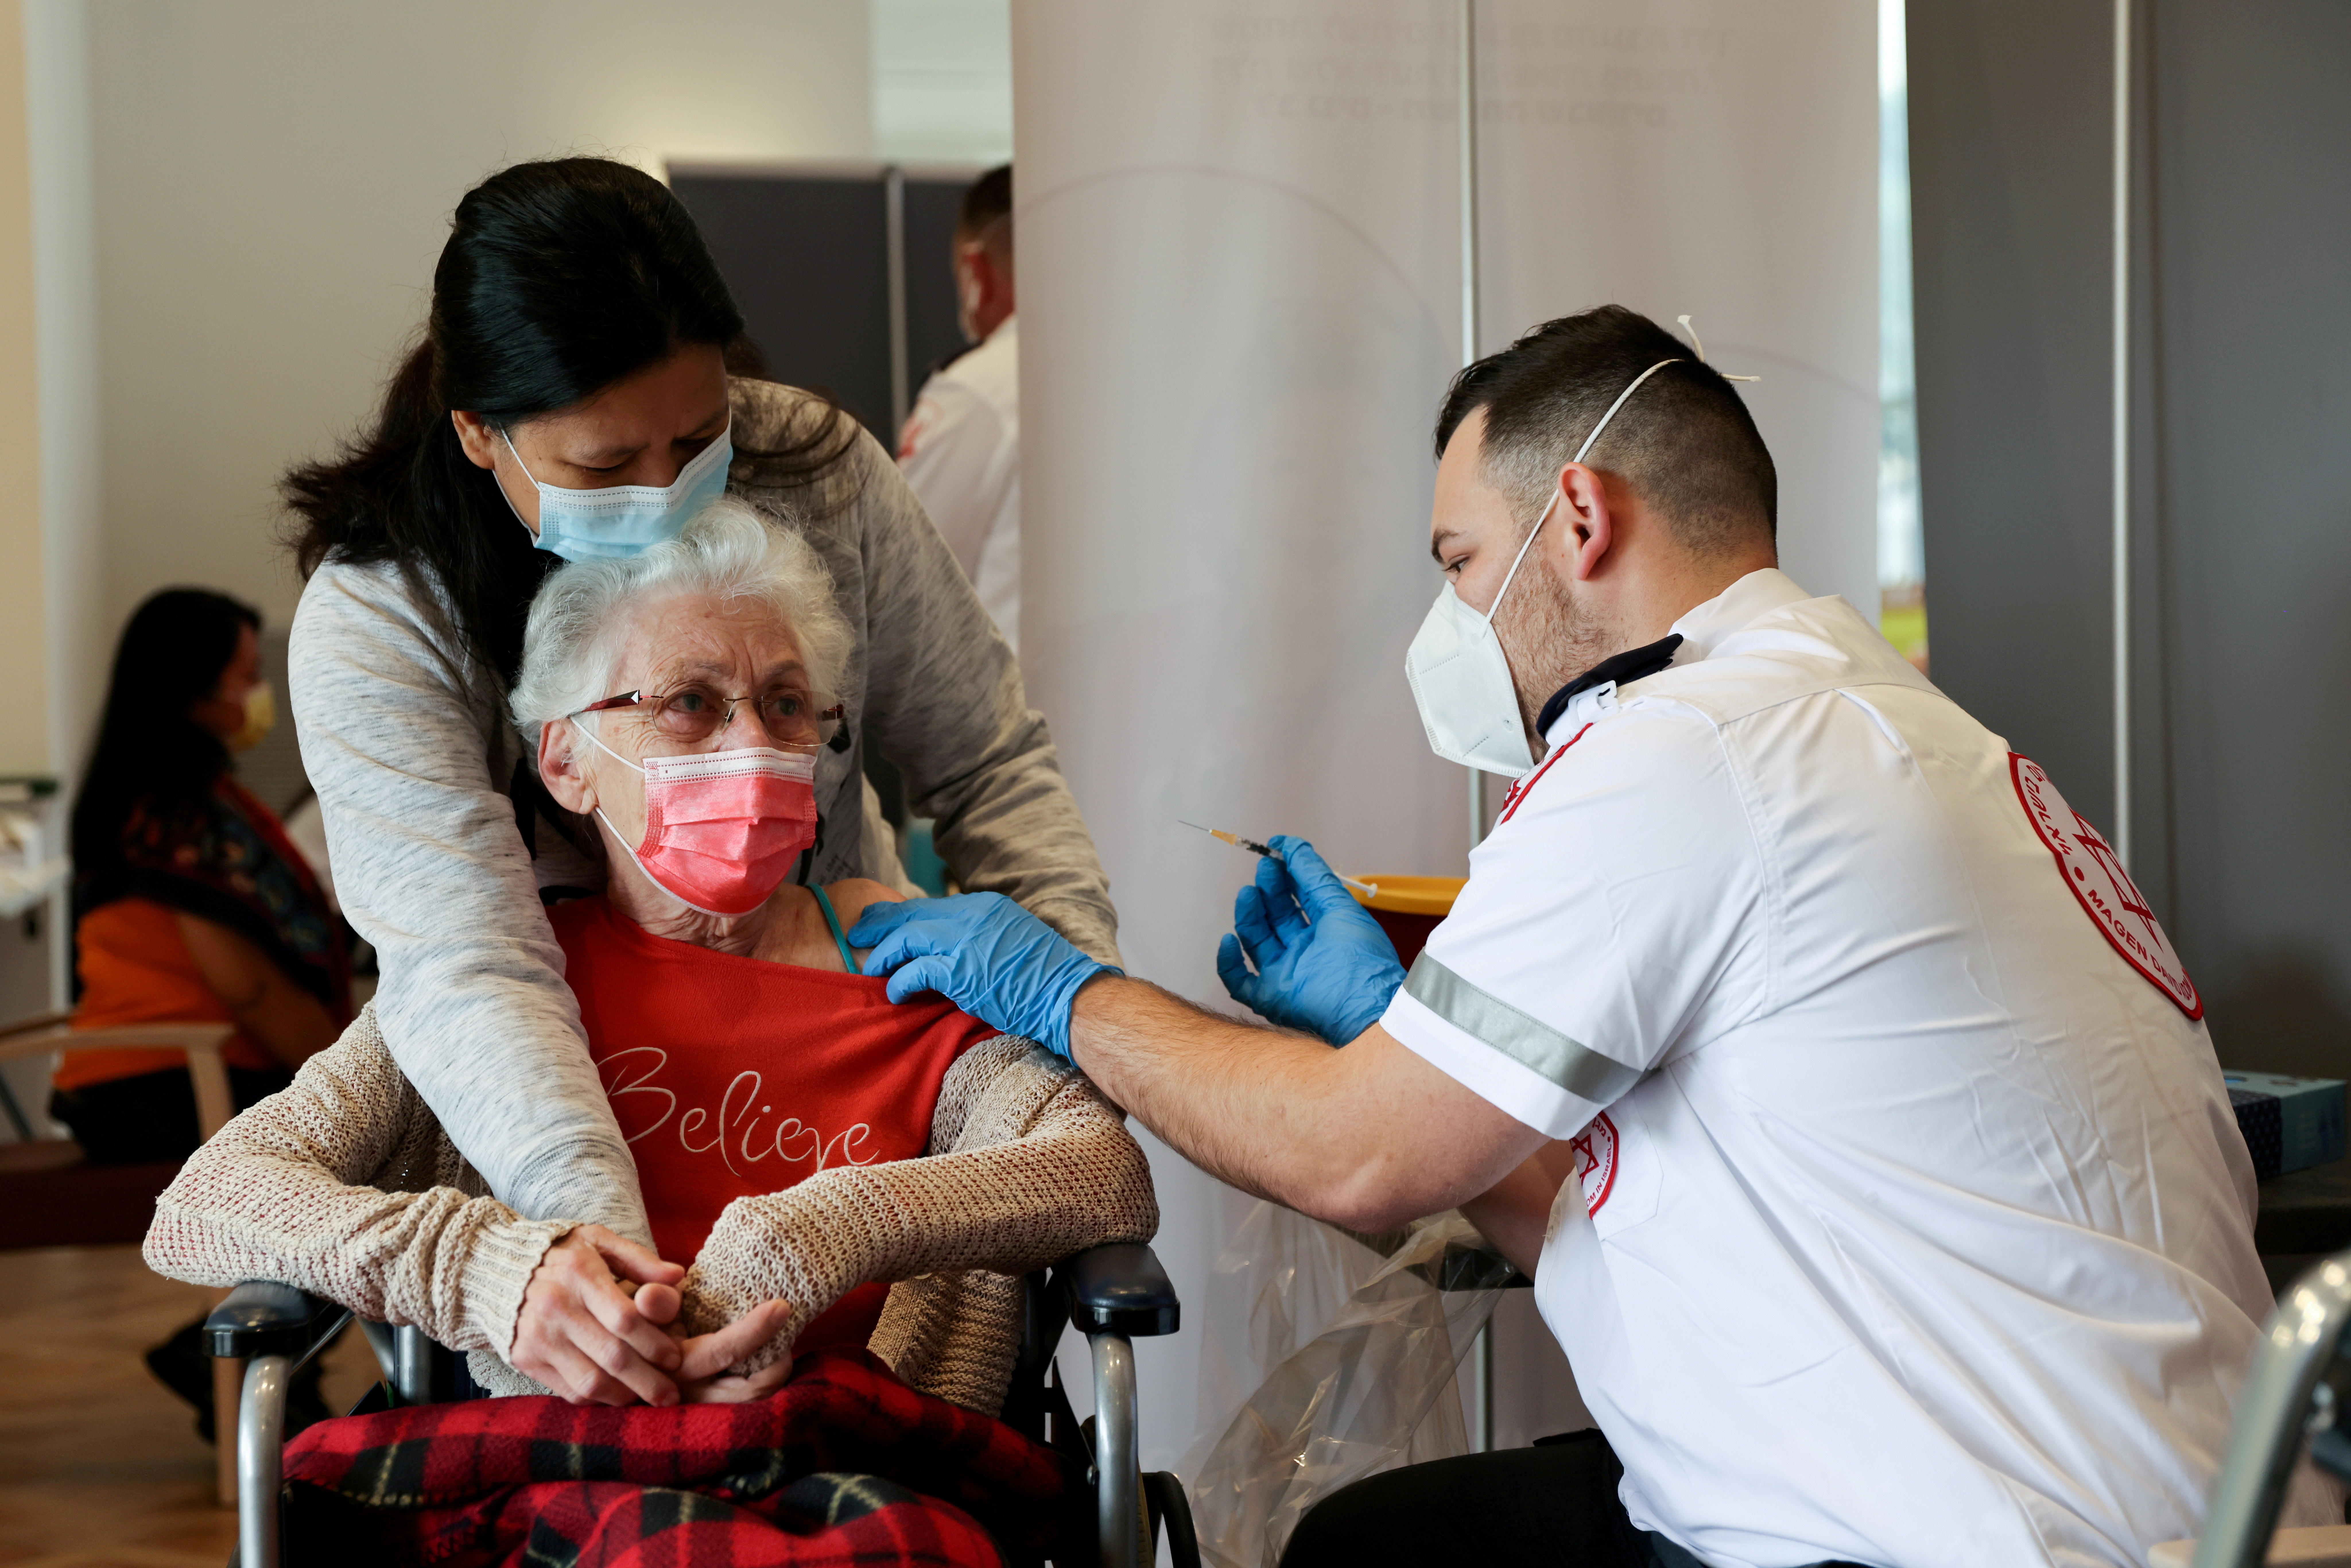 An elderly woman receives a booster shot of her vaccination against the coronavirus disease (COVID-19) at an assisted living facility, in Netanya, Israel January 19, 2021. REUTERS/Ronen Zvulun